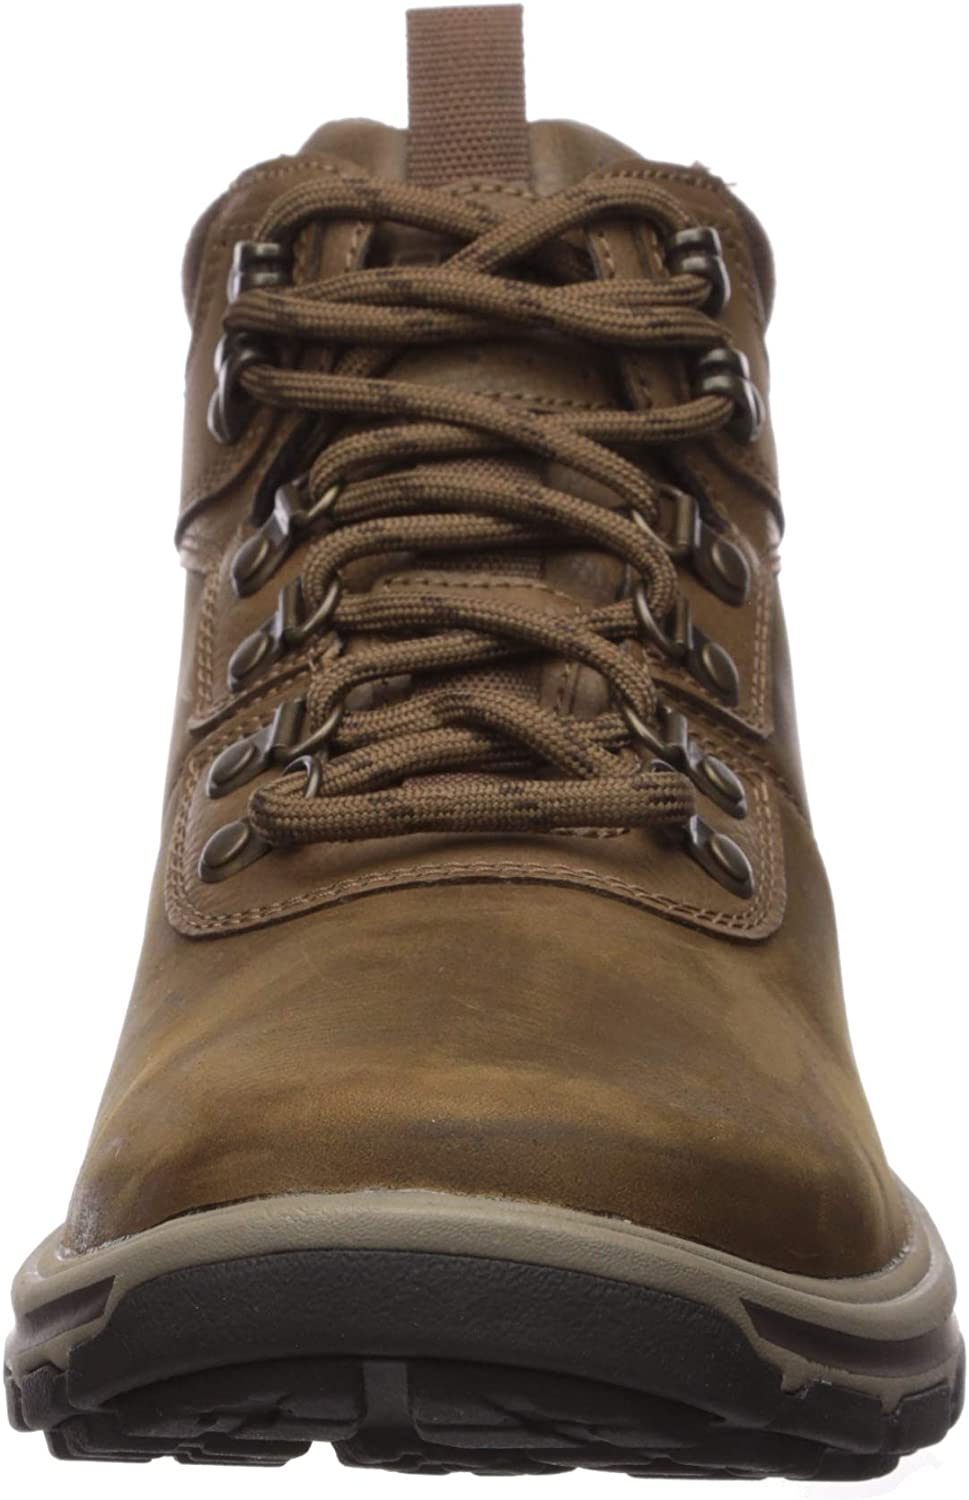 Skechers Men's Segment LACE UP Boot